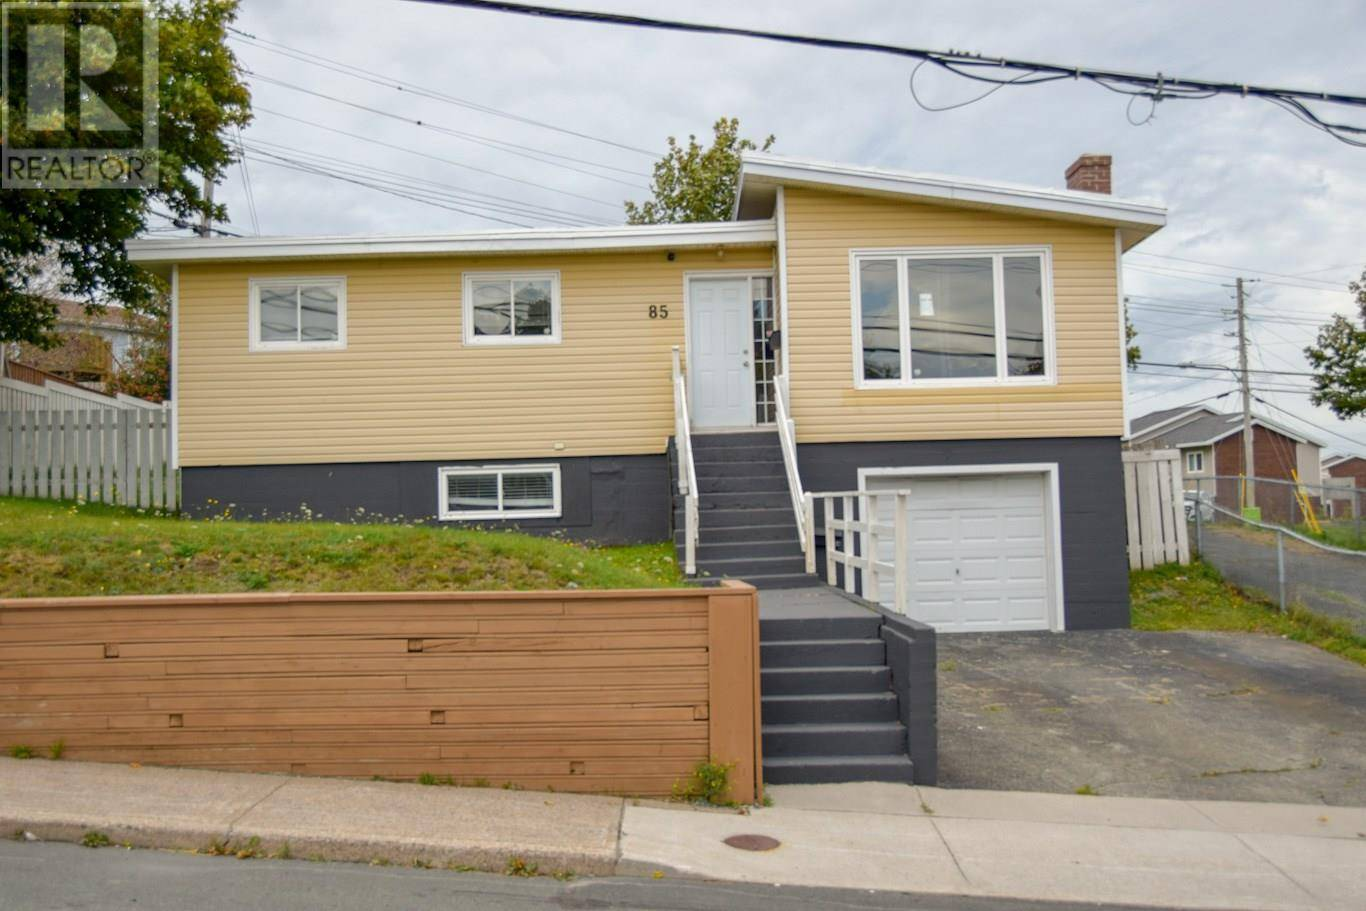 House for sale at 85 Cowan Ave St. John's Newfoundland - MLS: 1208893